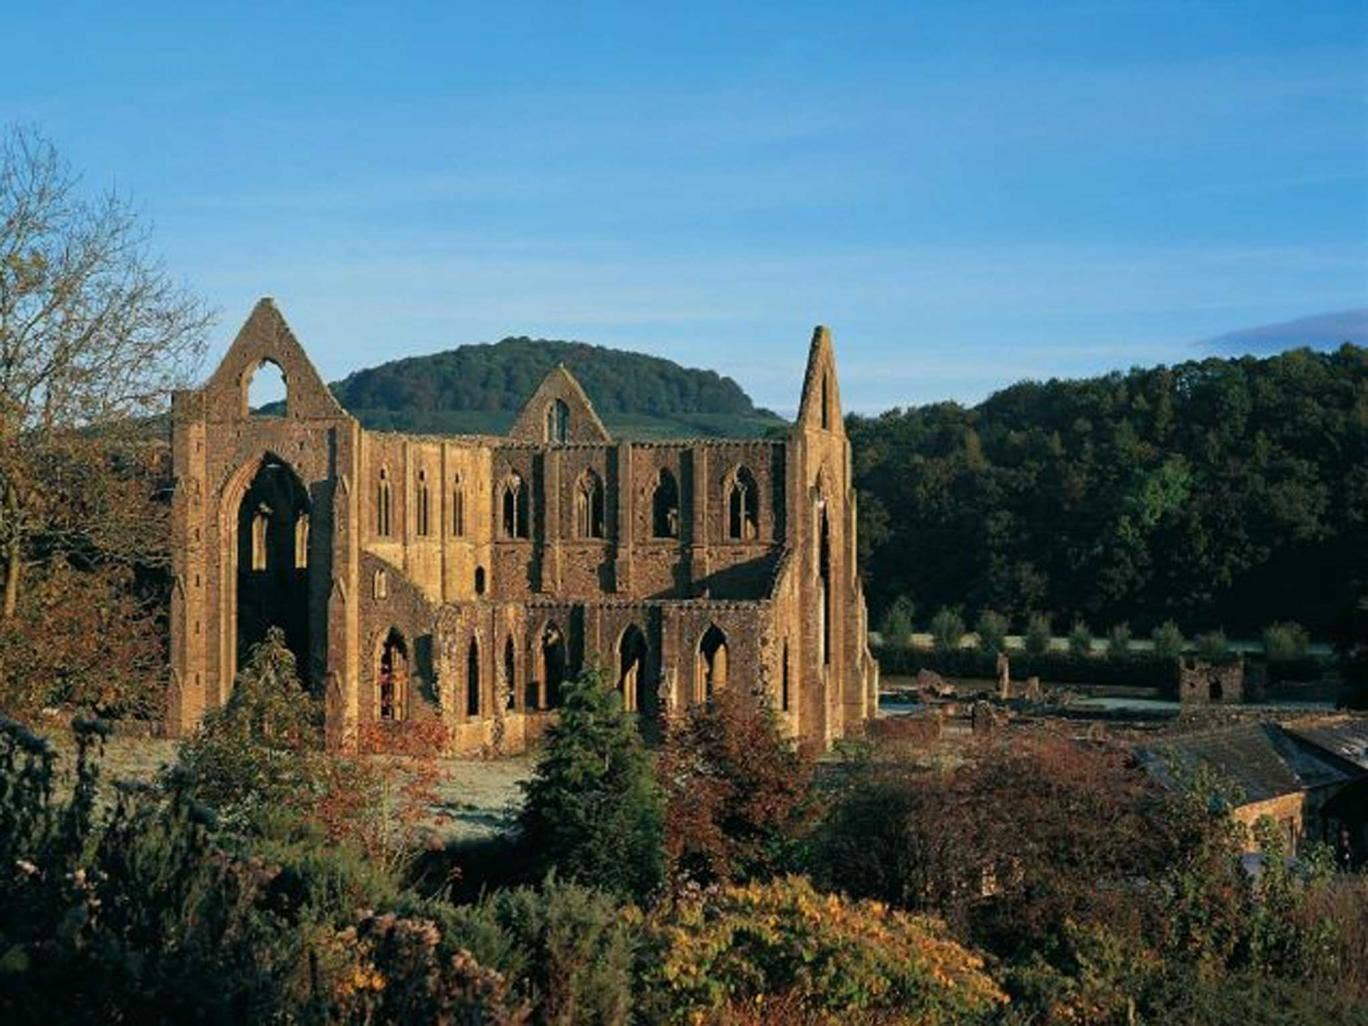 The show features work across the eras from Turner's painting of Tintern Abbey